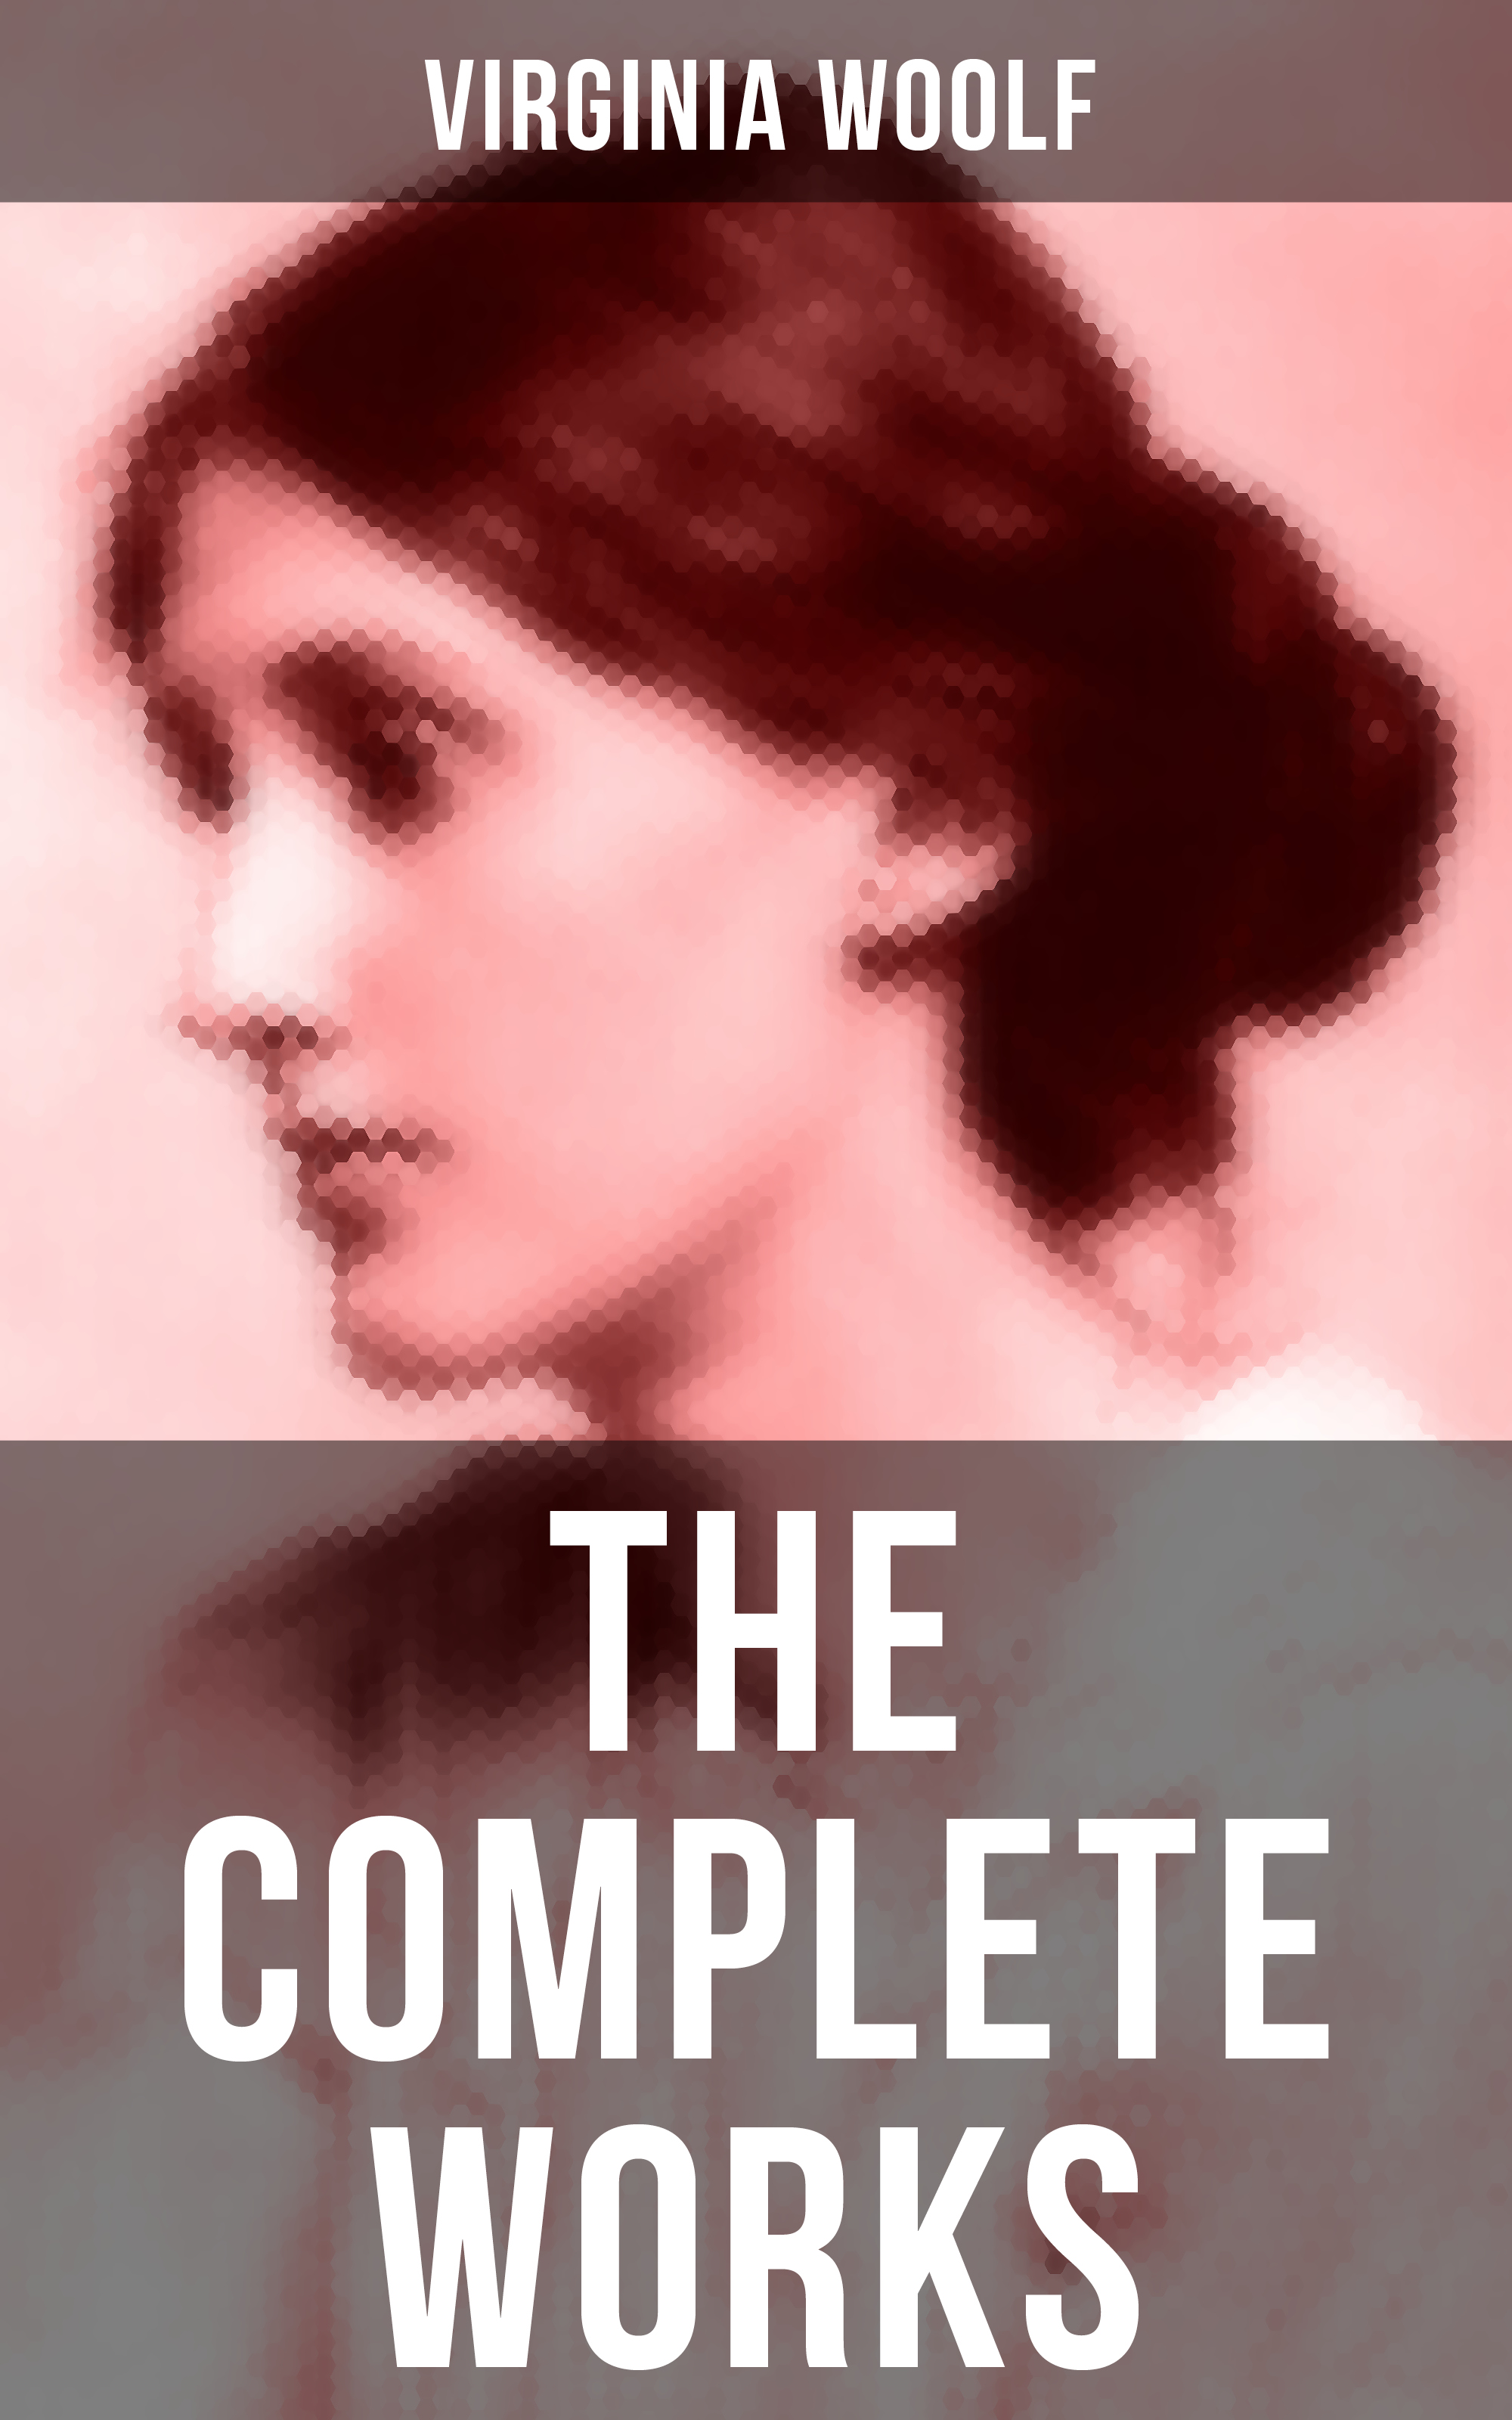 Virginia Woolf The Complete Works of Virginia Woolf virginia woolf the complete novels of virginia woolf 9 unabridged novels